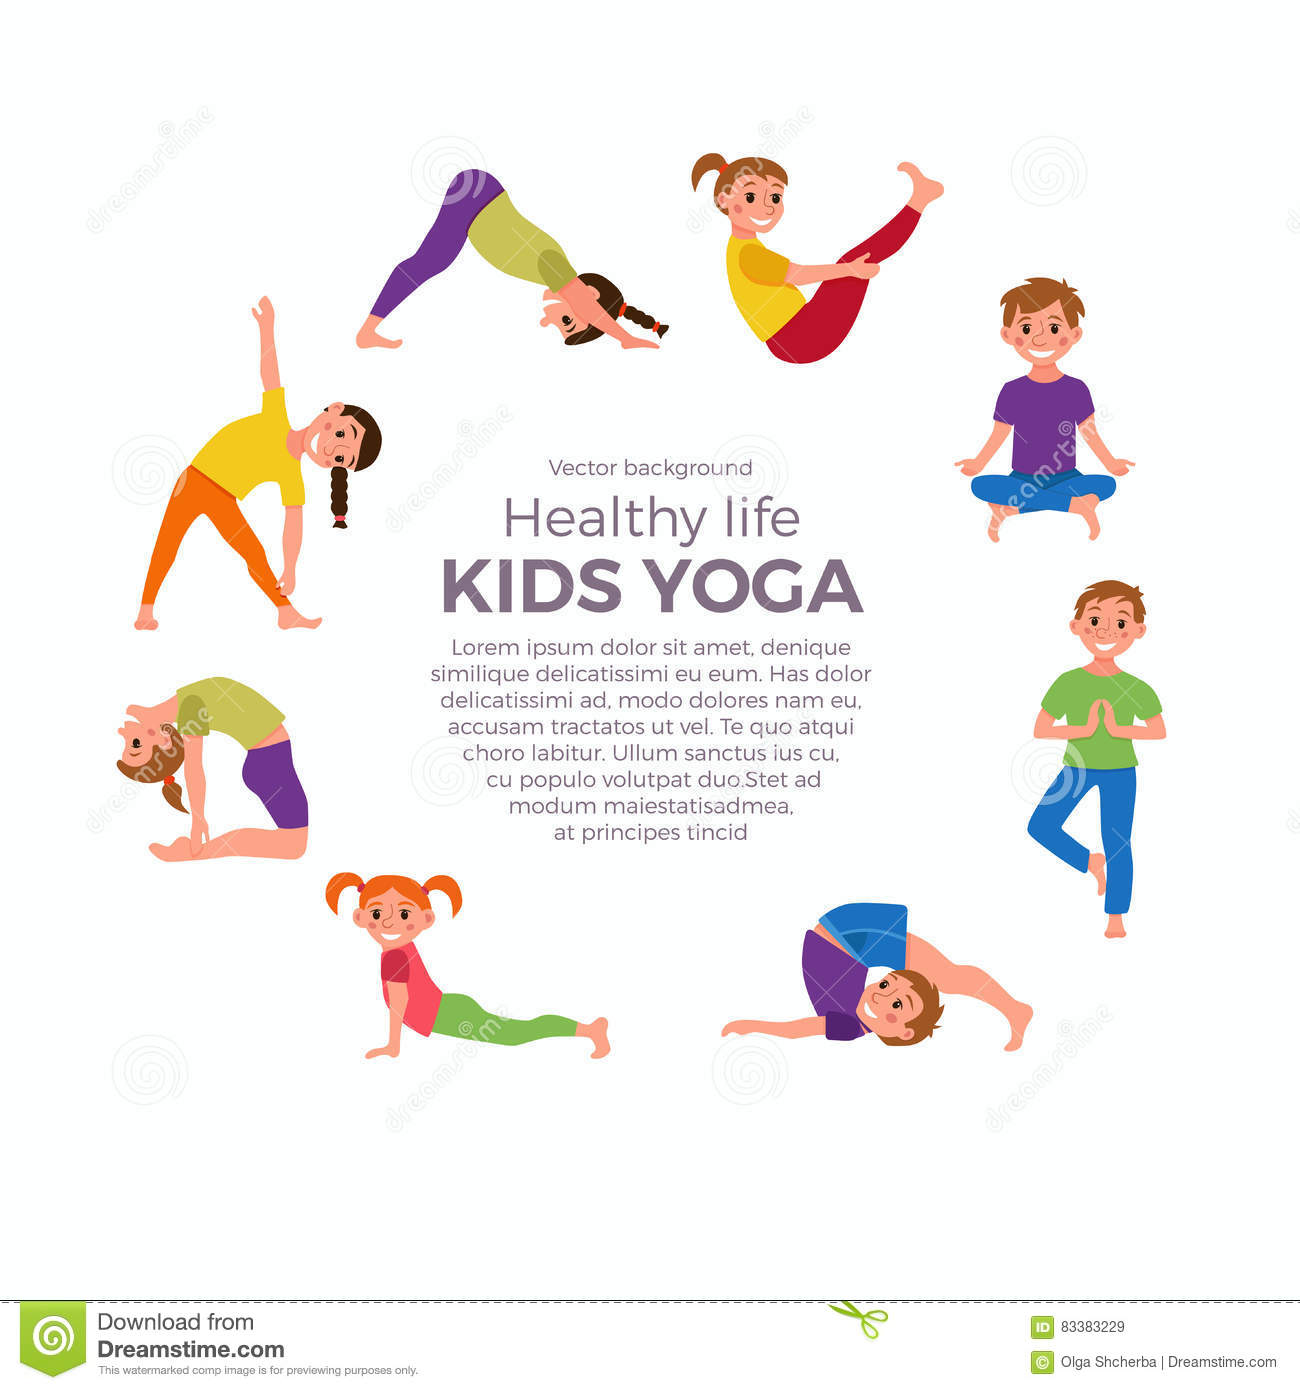 Yoga kids poses stock vector. Image of balance, background ...